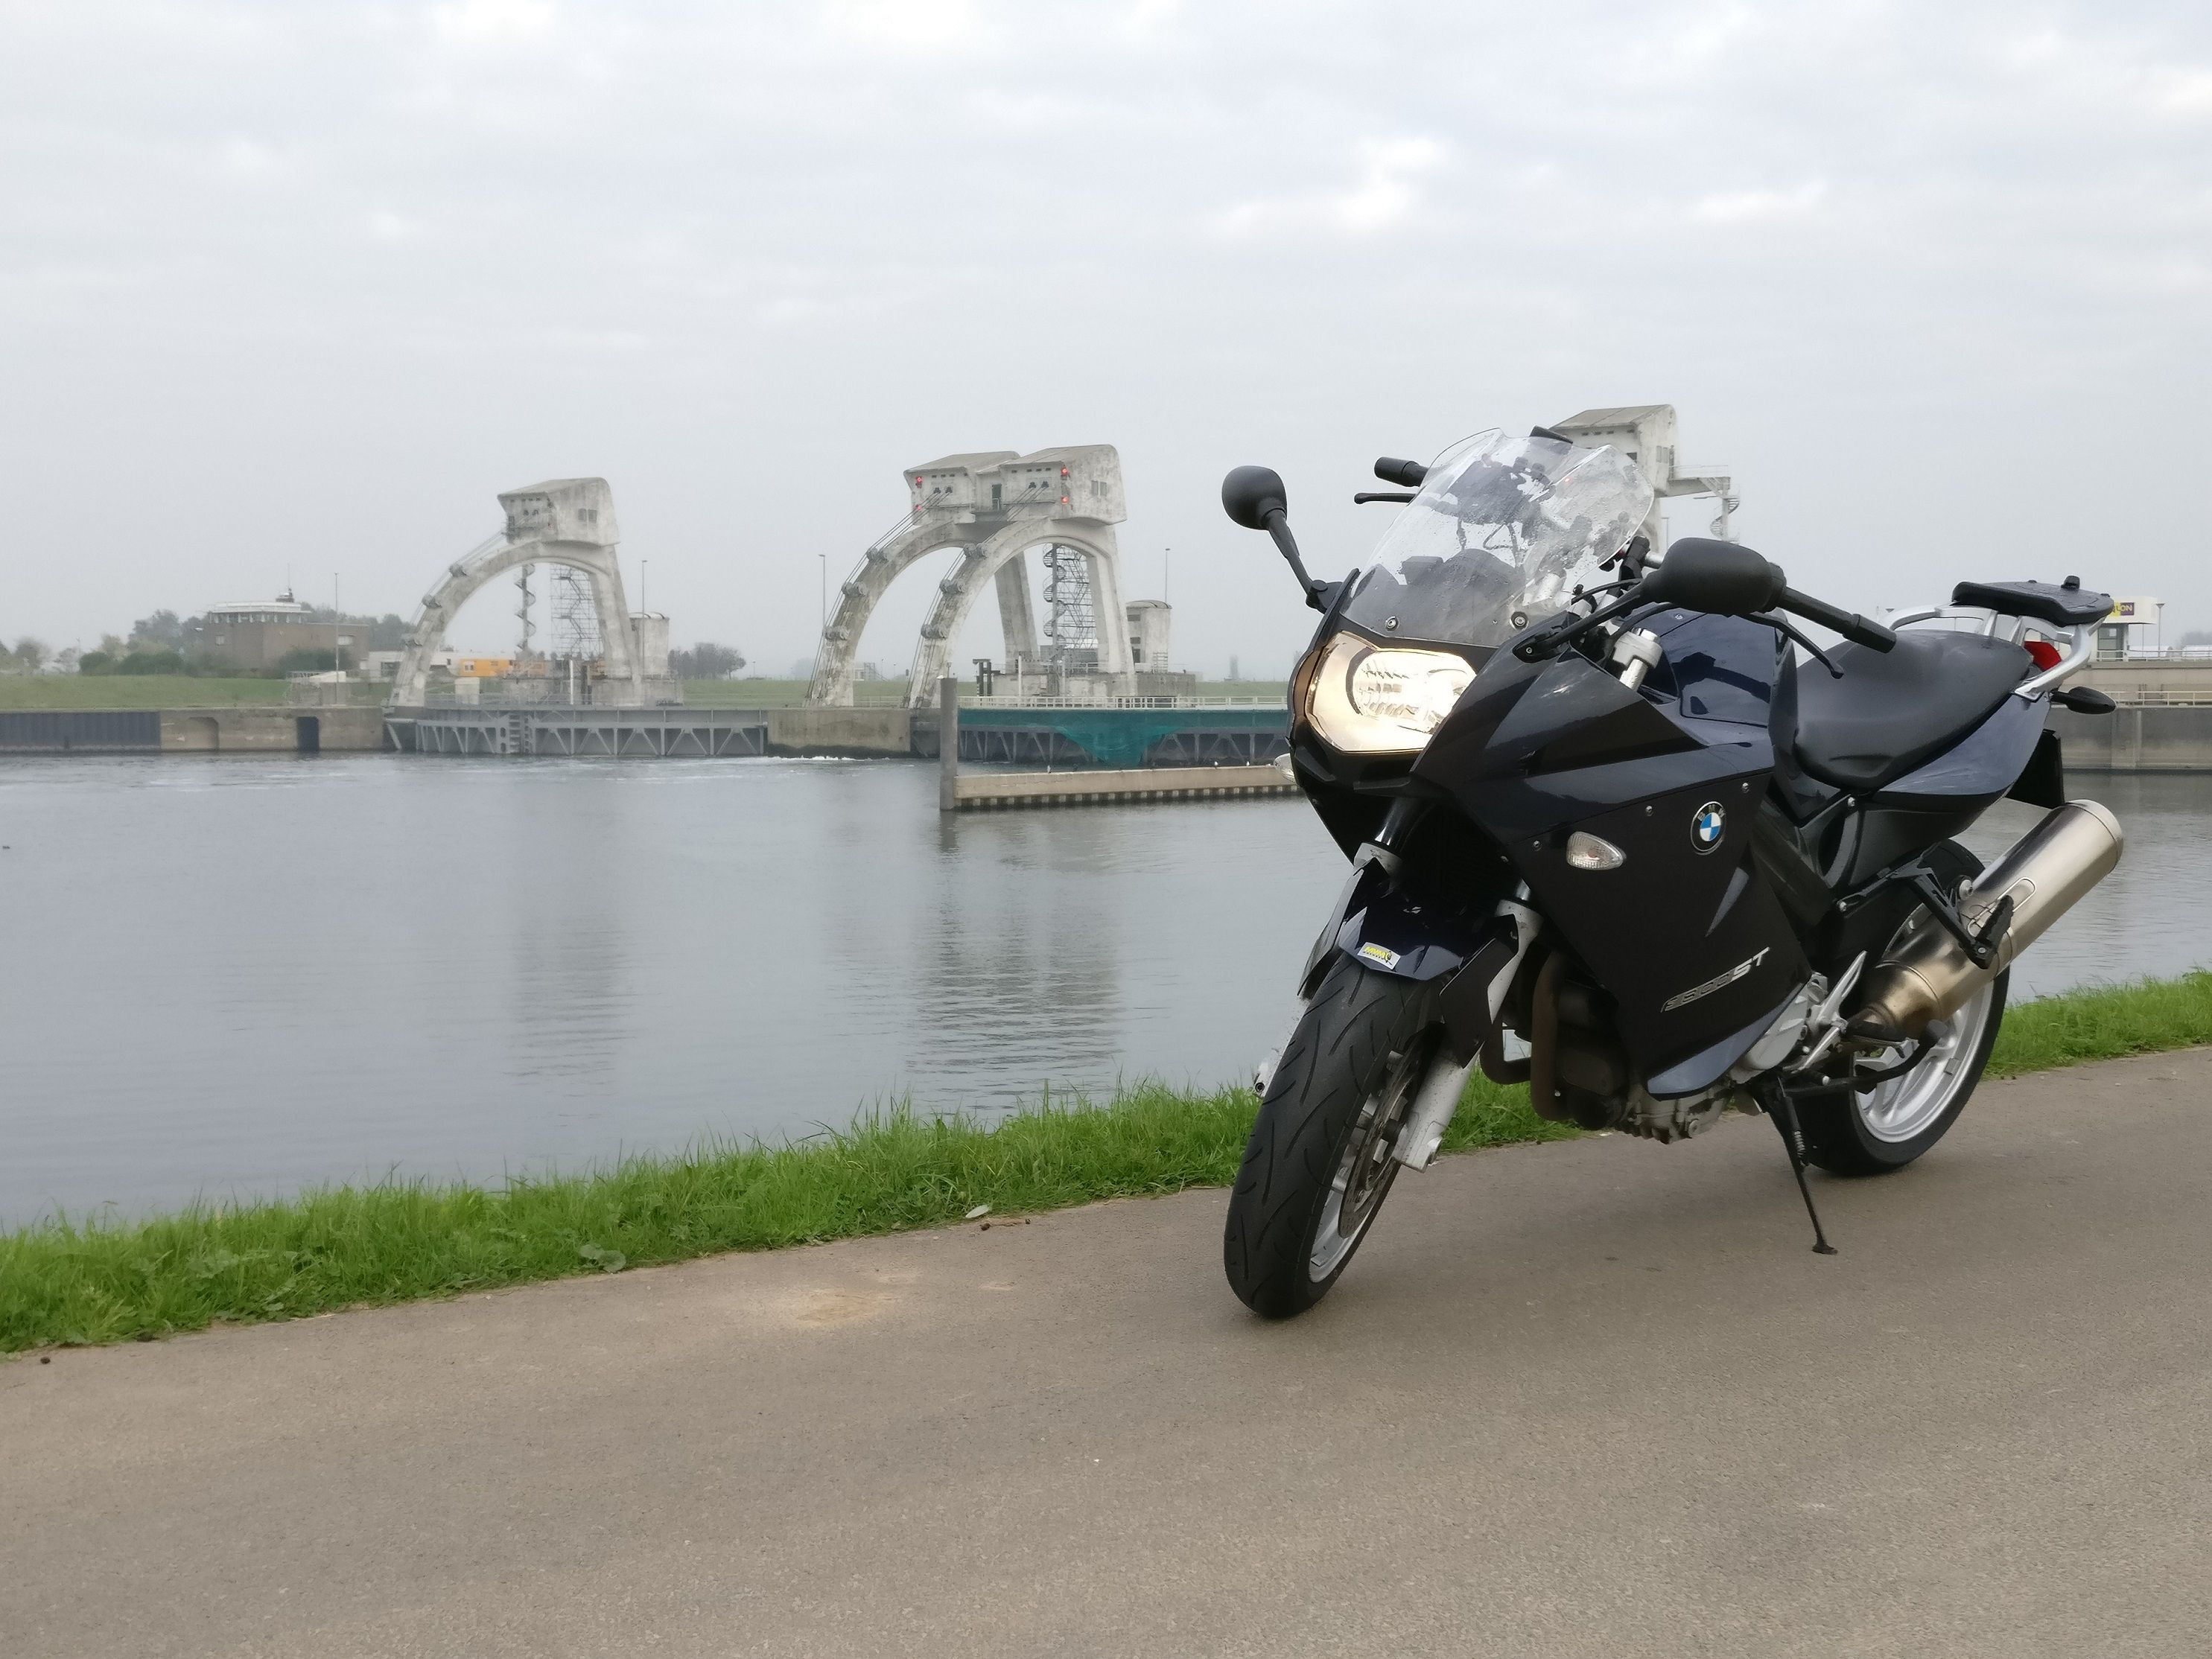 http://www.motor-forum.nl/forum/download_document/1315769/869d364c13435aea898602bd452d24e6